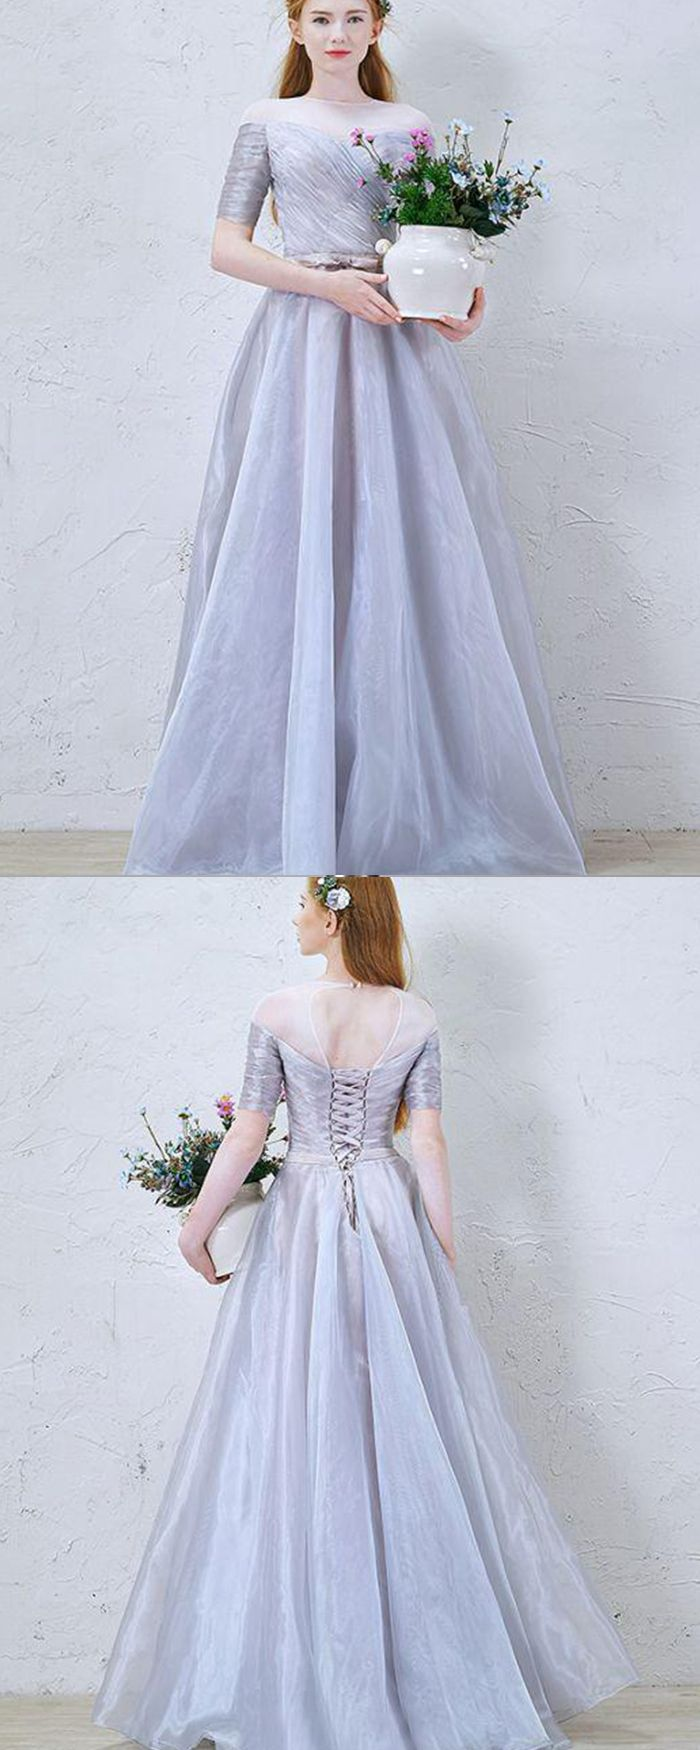 Sheer Neck Ruched Tulle Dusty Blue Formal Dress With Half Length Sleeves Pm1367 Blue Dress Formal Bridesmaid Dress Collection Formal Dresses [ 1750 x 700 Pixel ]